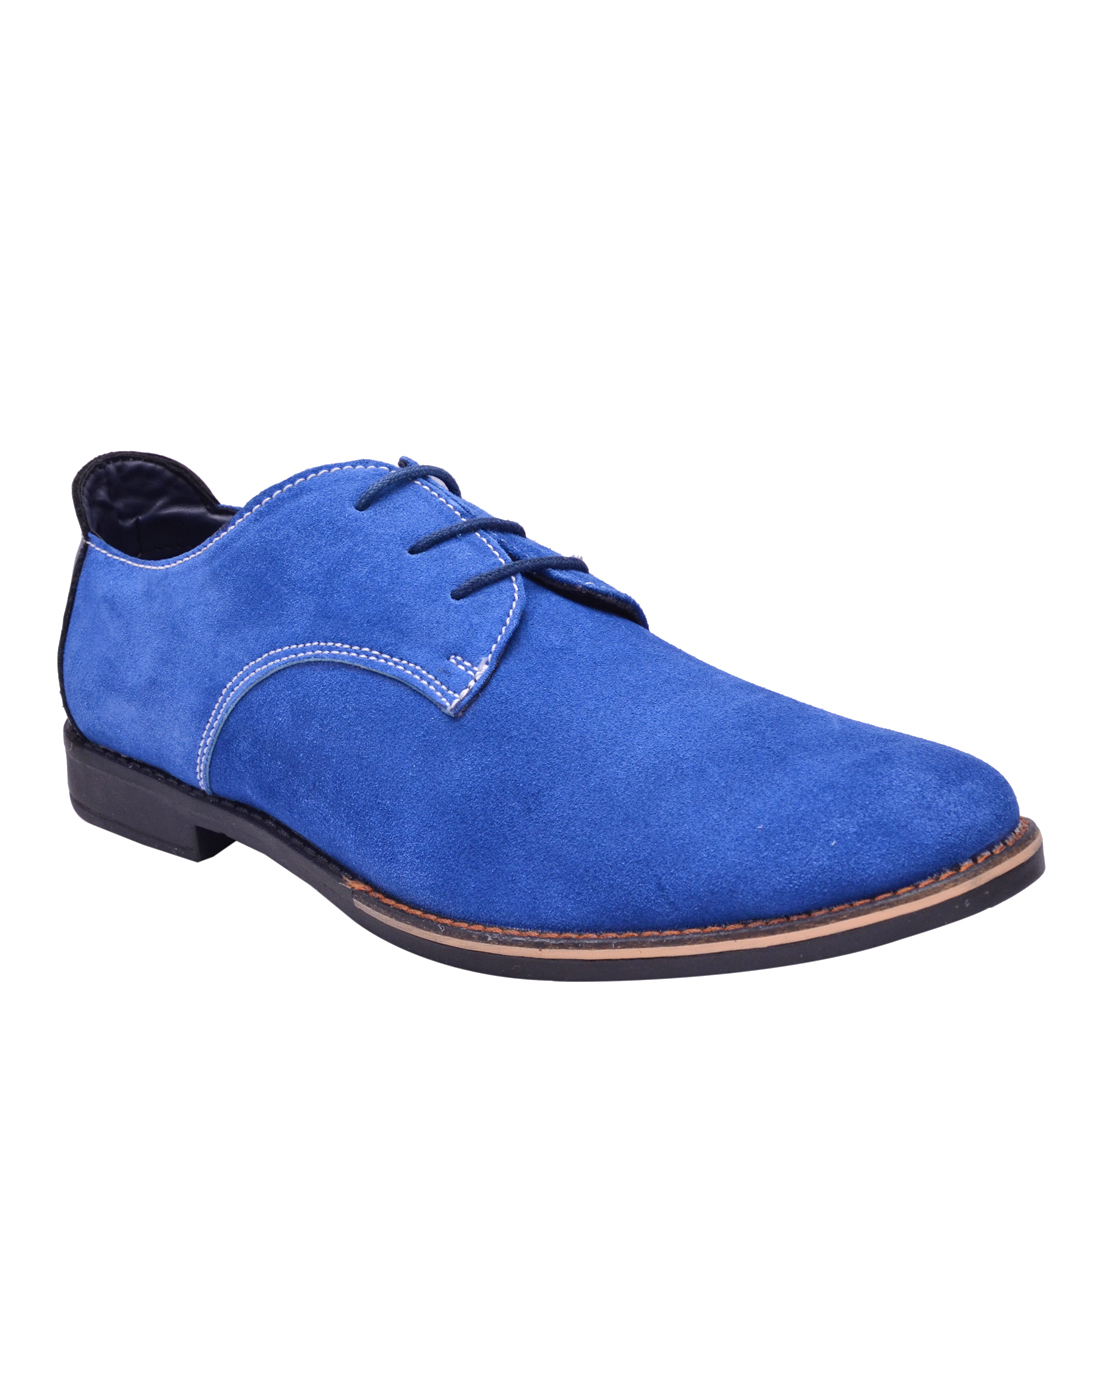 SUEDE LEATHER CASUAL SHOES FOR MEN'S